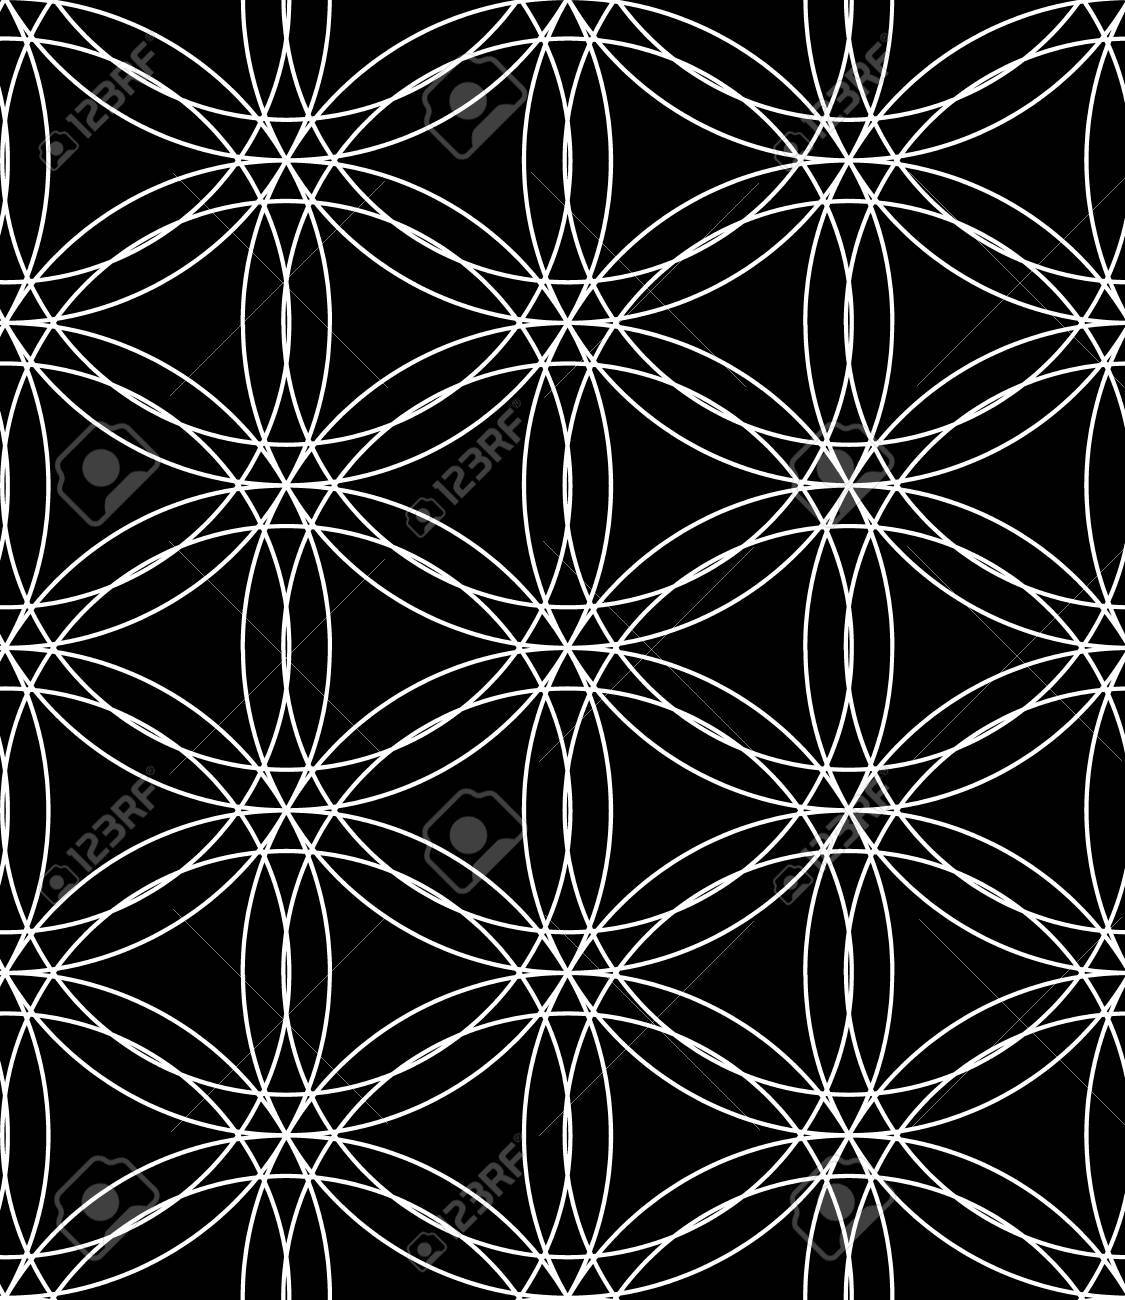 Bed sheet pattern texture - Vector Vector Modern Seamless Pattern Flower Of Life Black And White Textile Print Stylish Background Abstract Texture Monochrome Fashion Design Bed